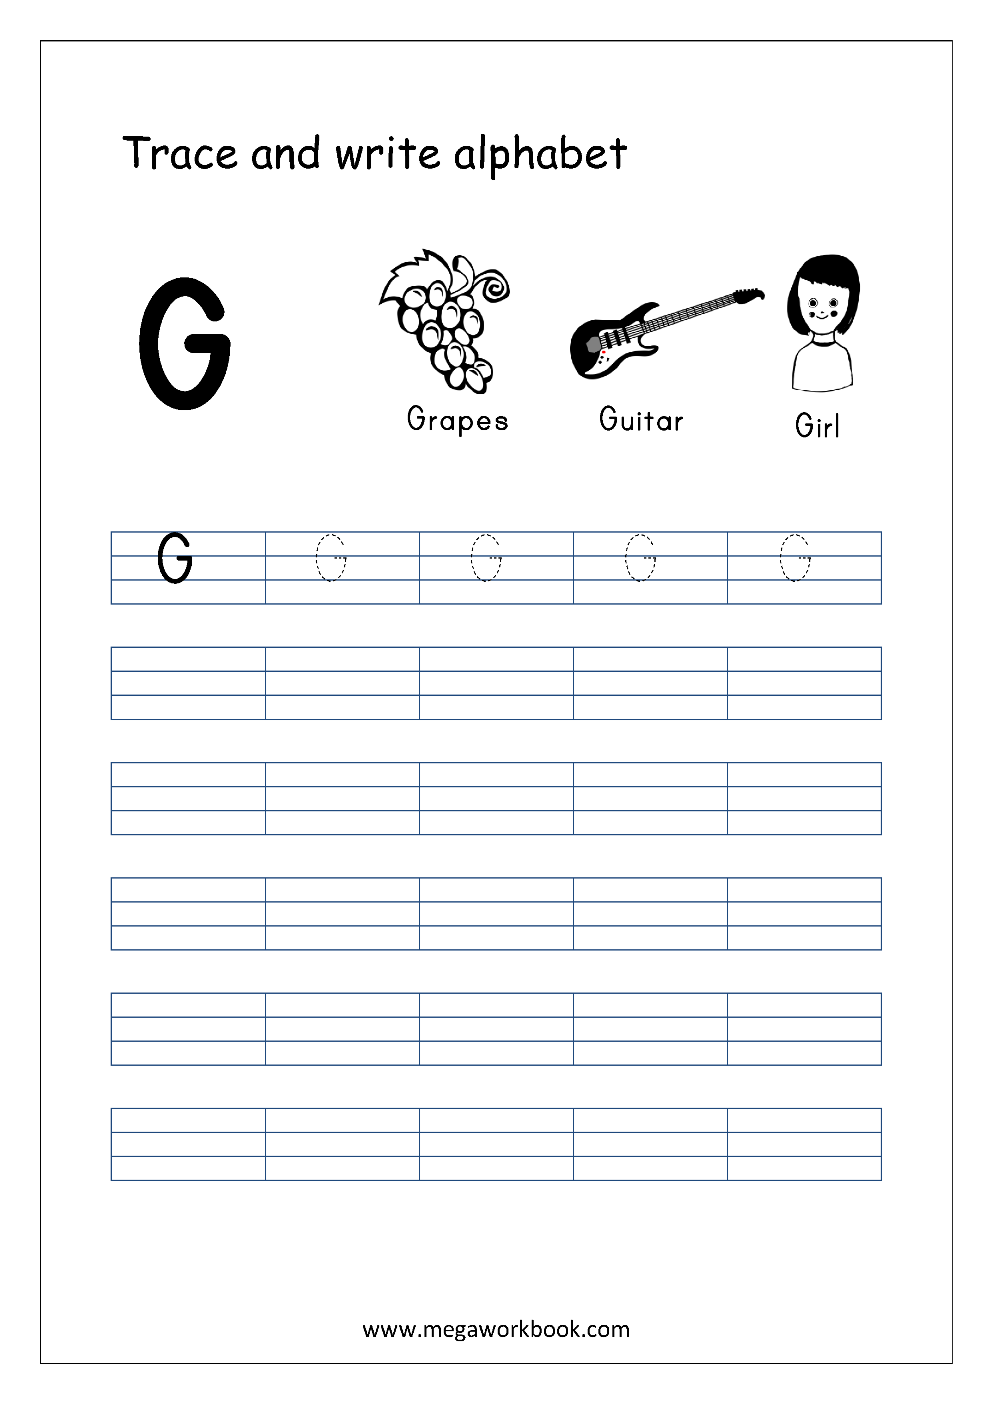 How To Write G In Capital Letter